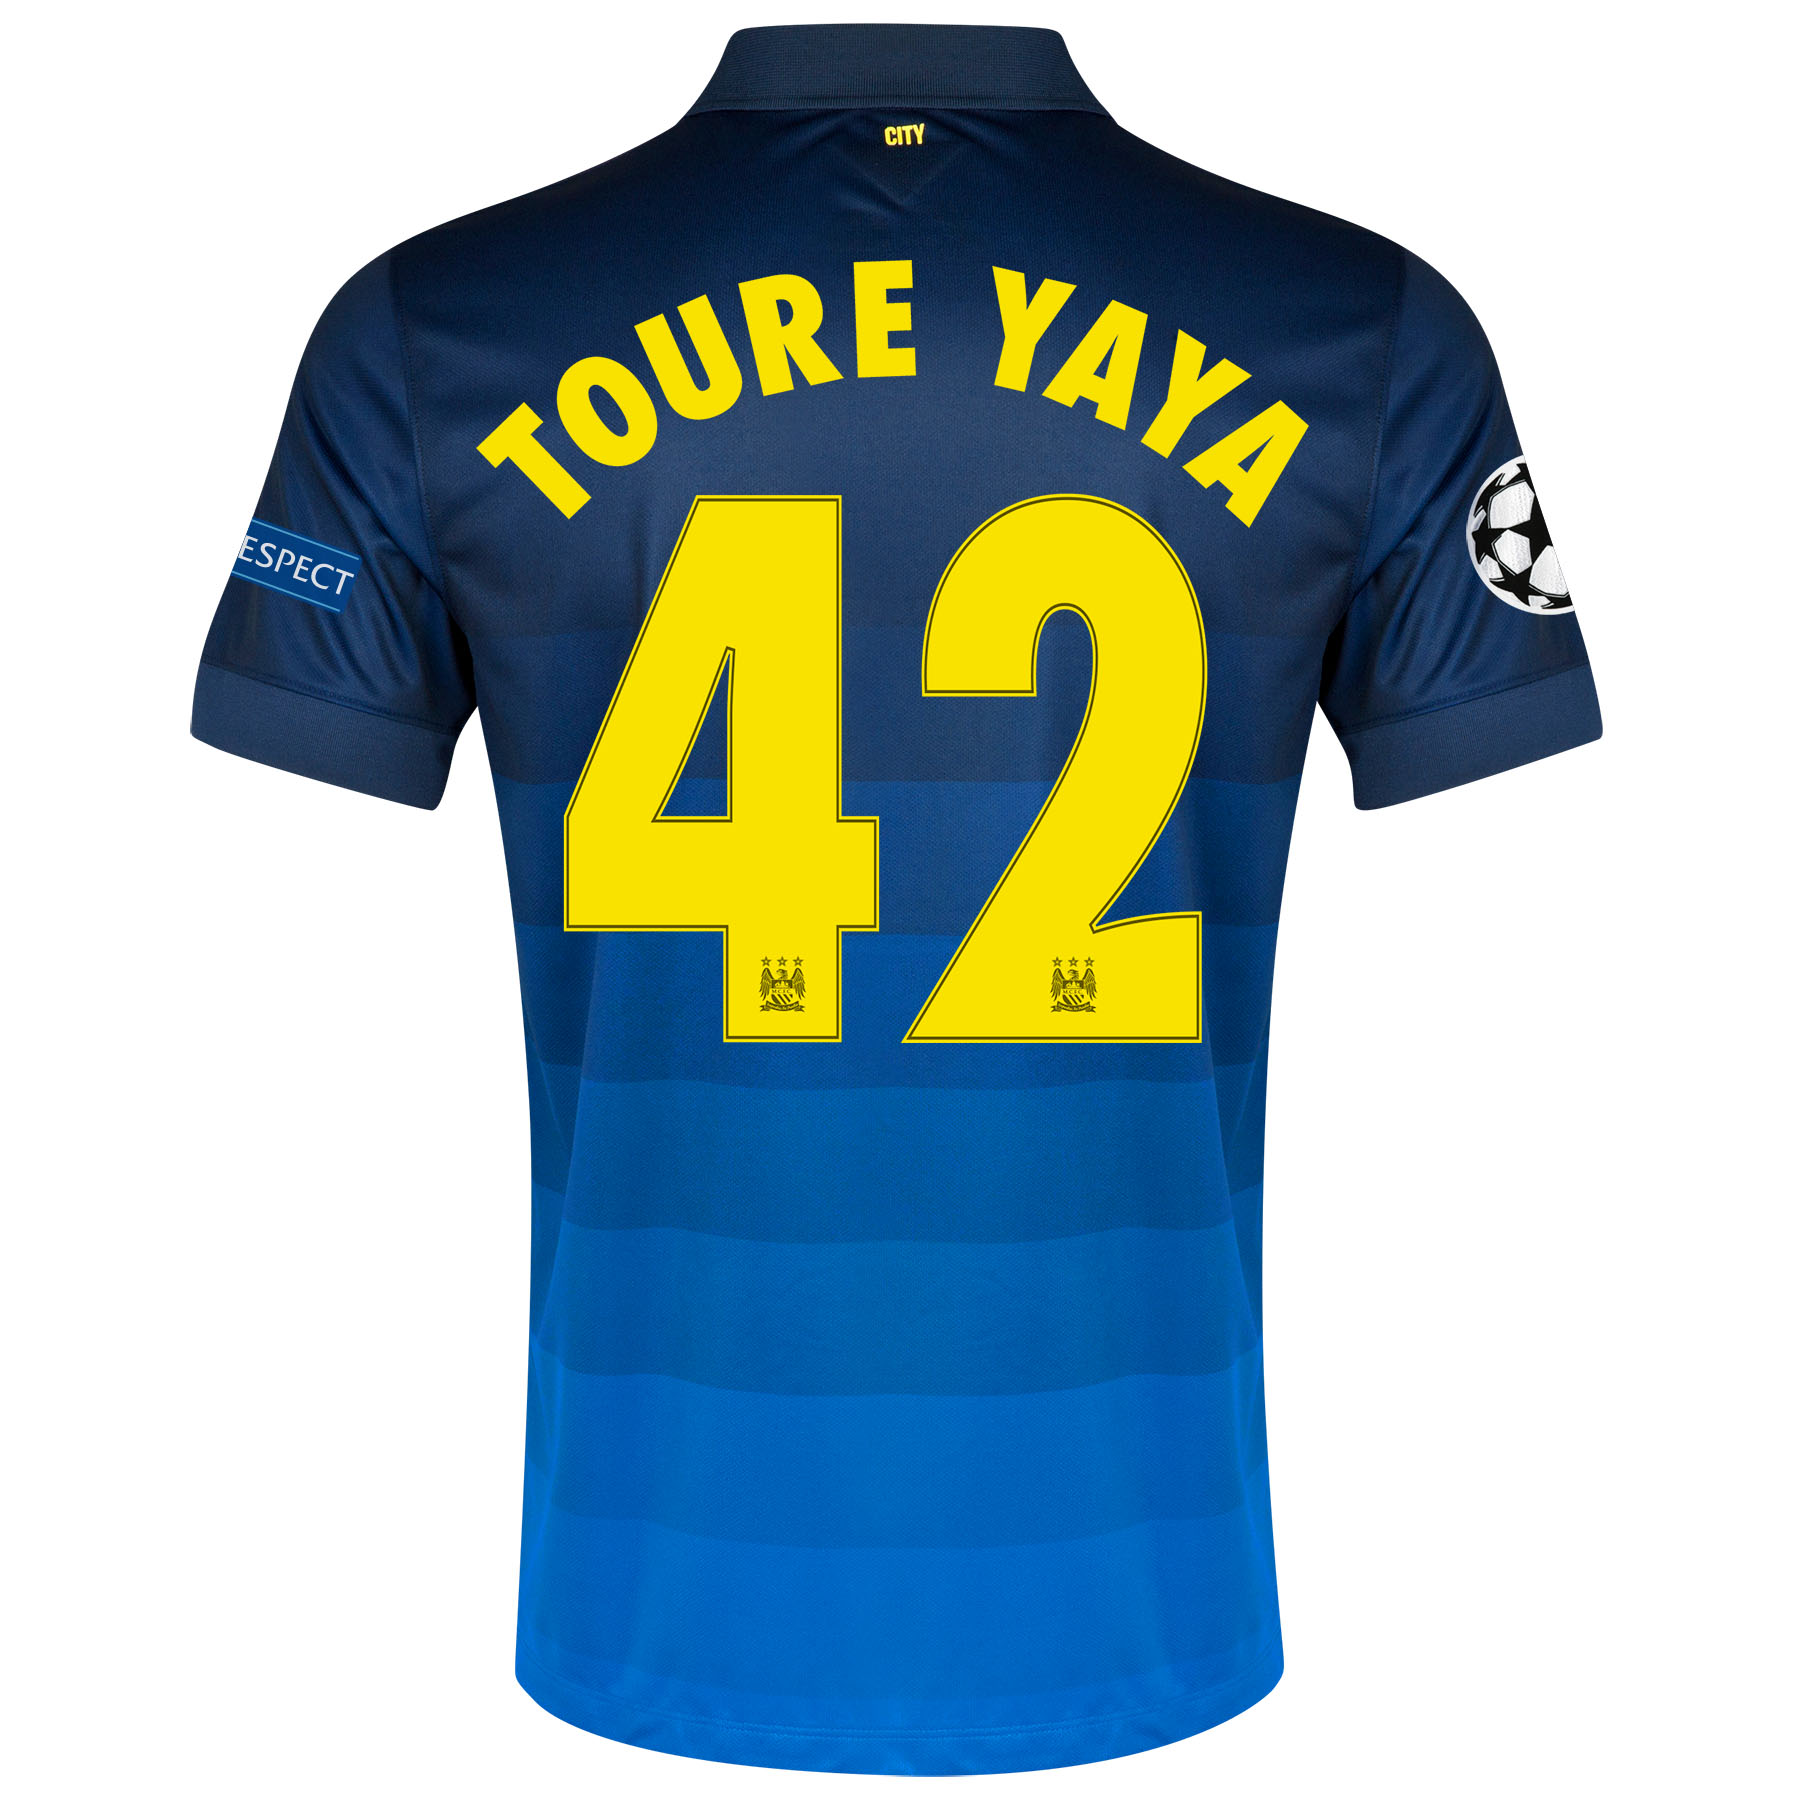 Manchester City UEFA Champions League Away Shirt 2014/15 with Toure Yaya 42 printing